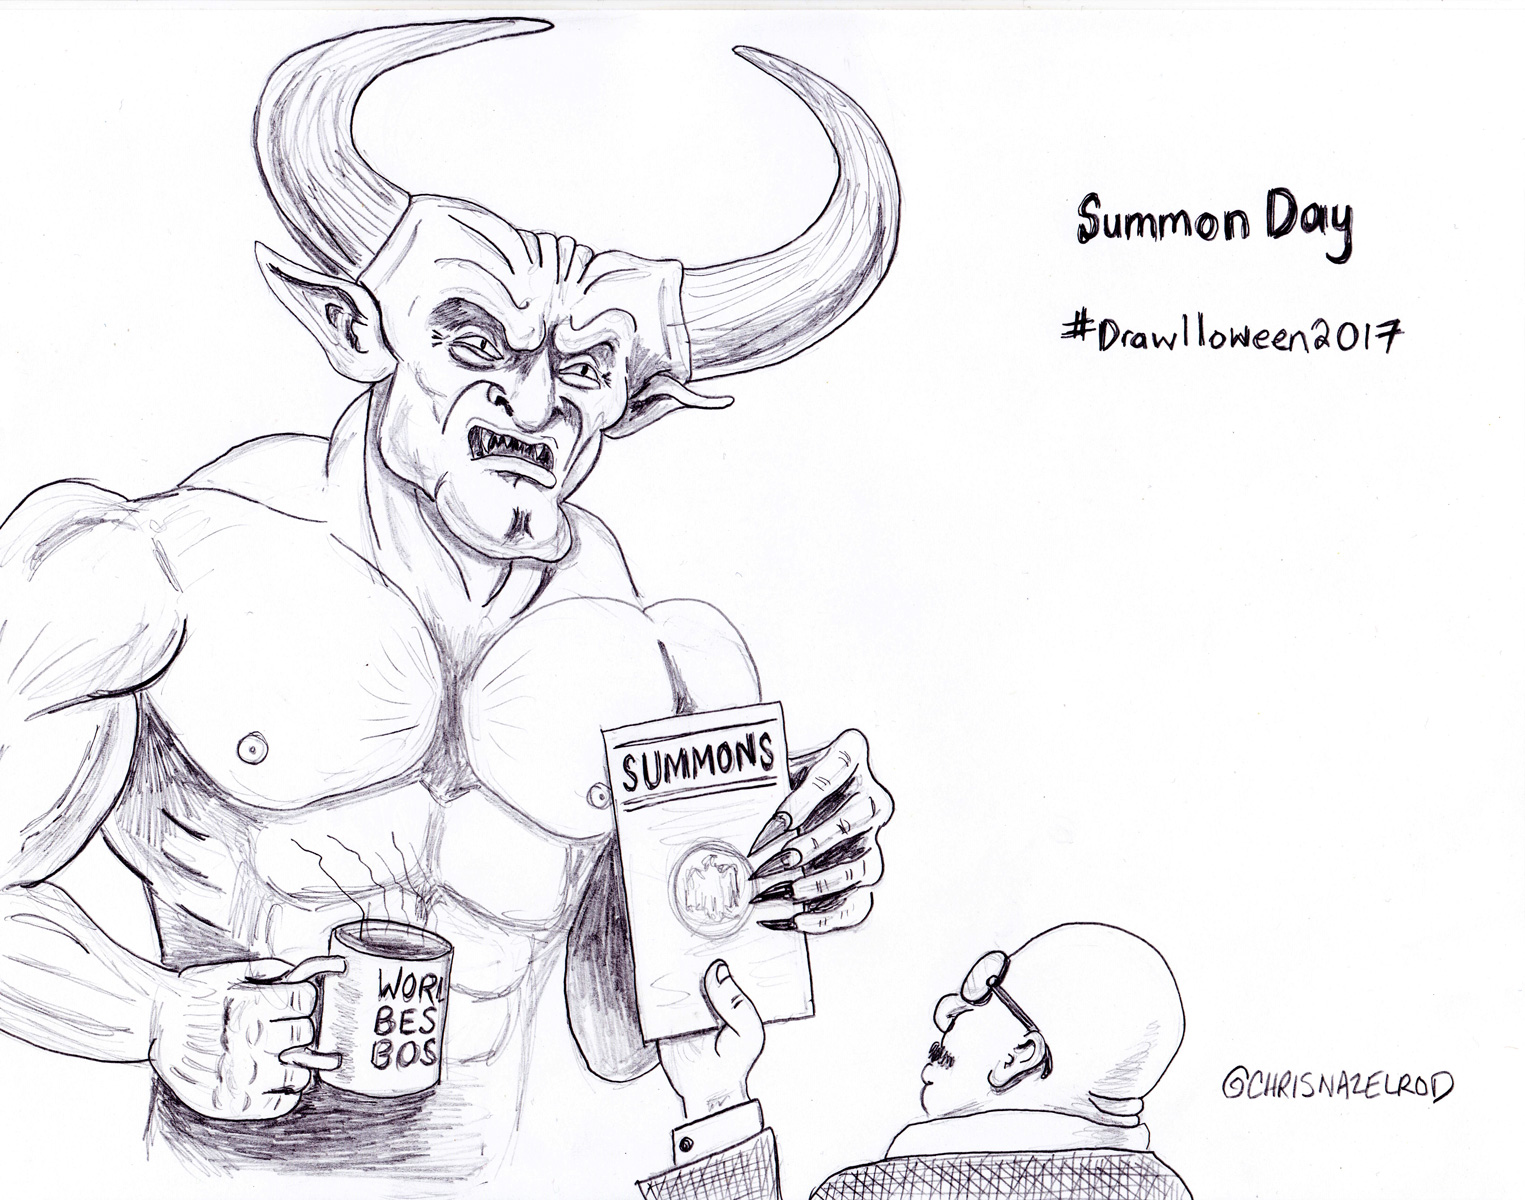 Day 2: Summon Day